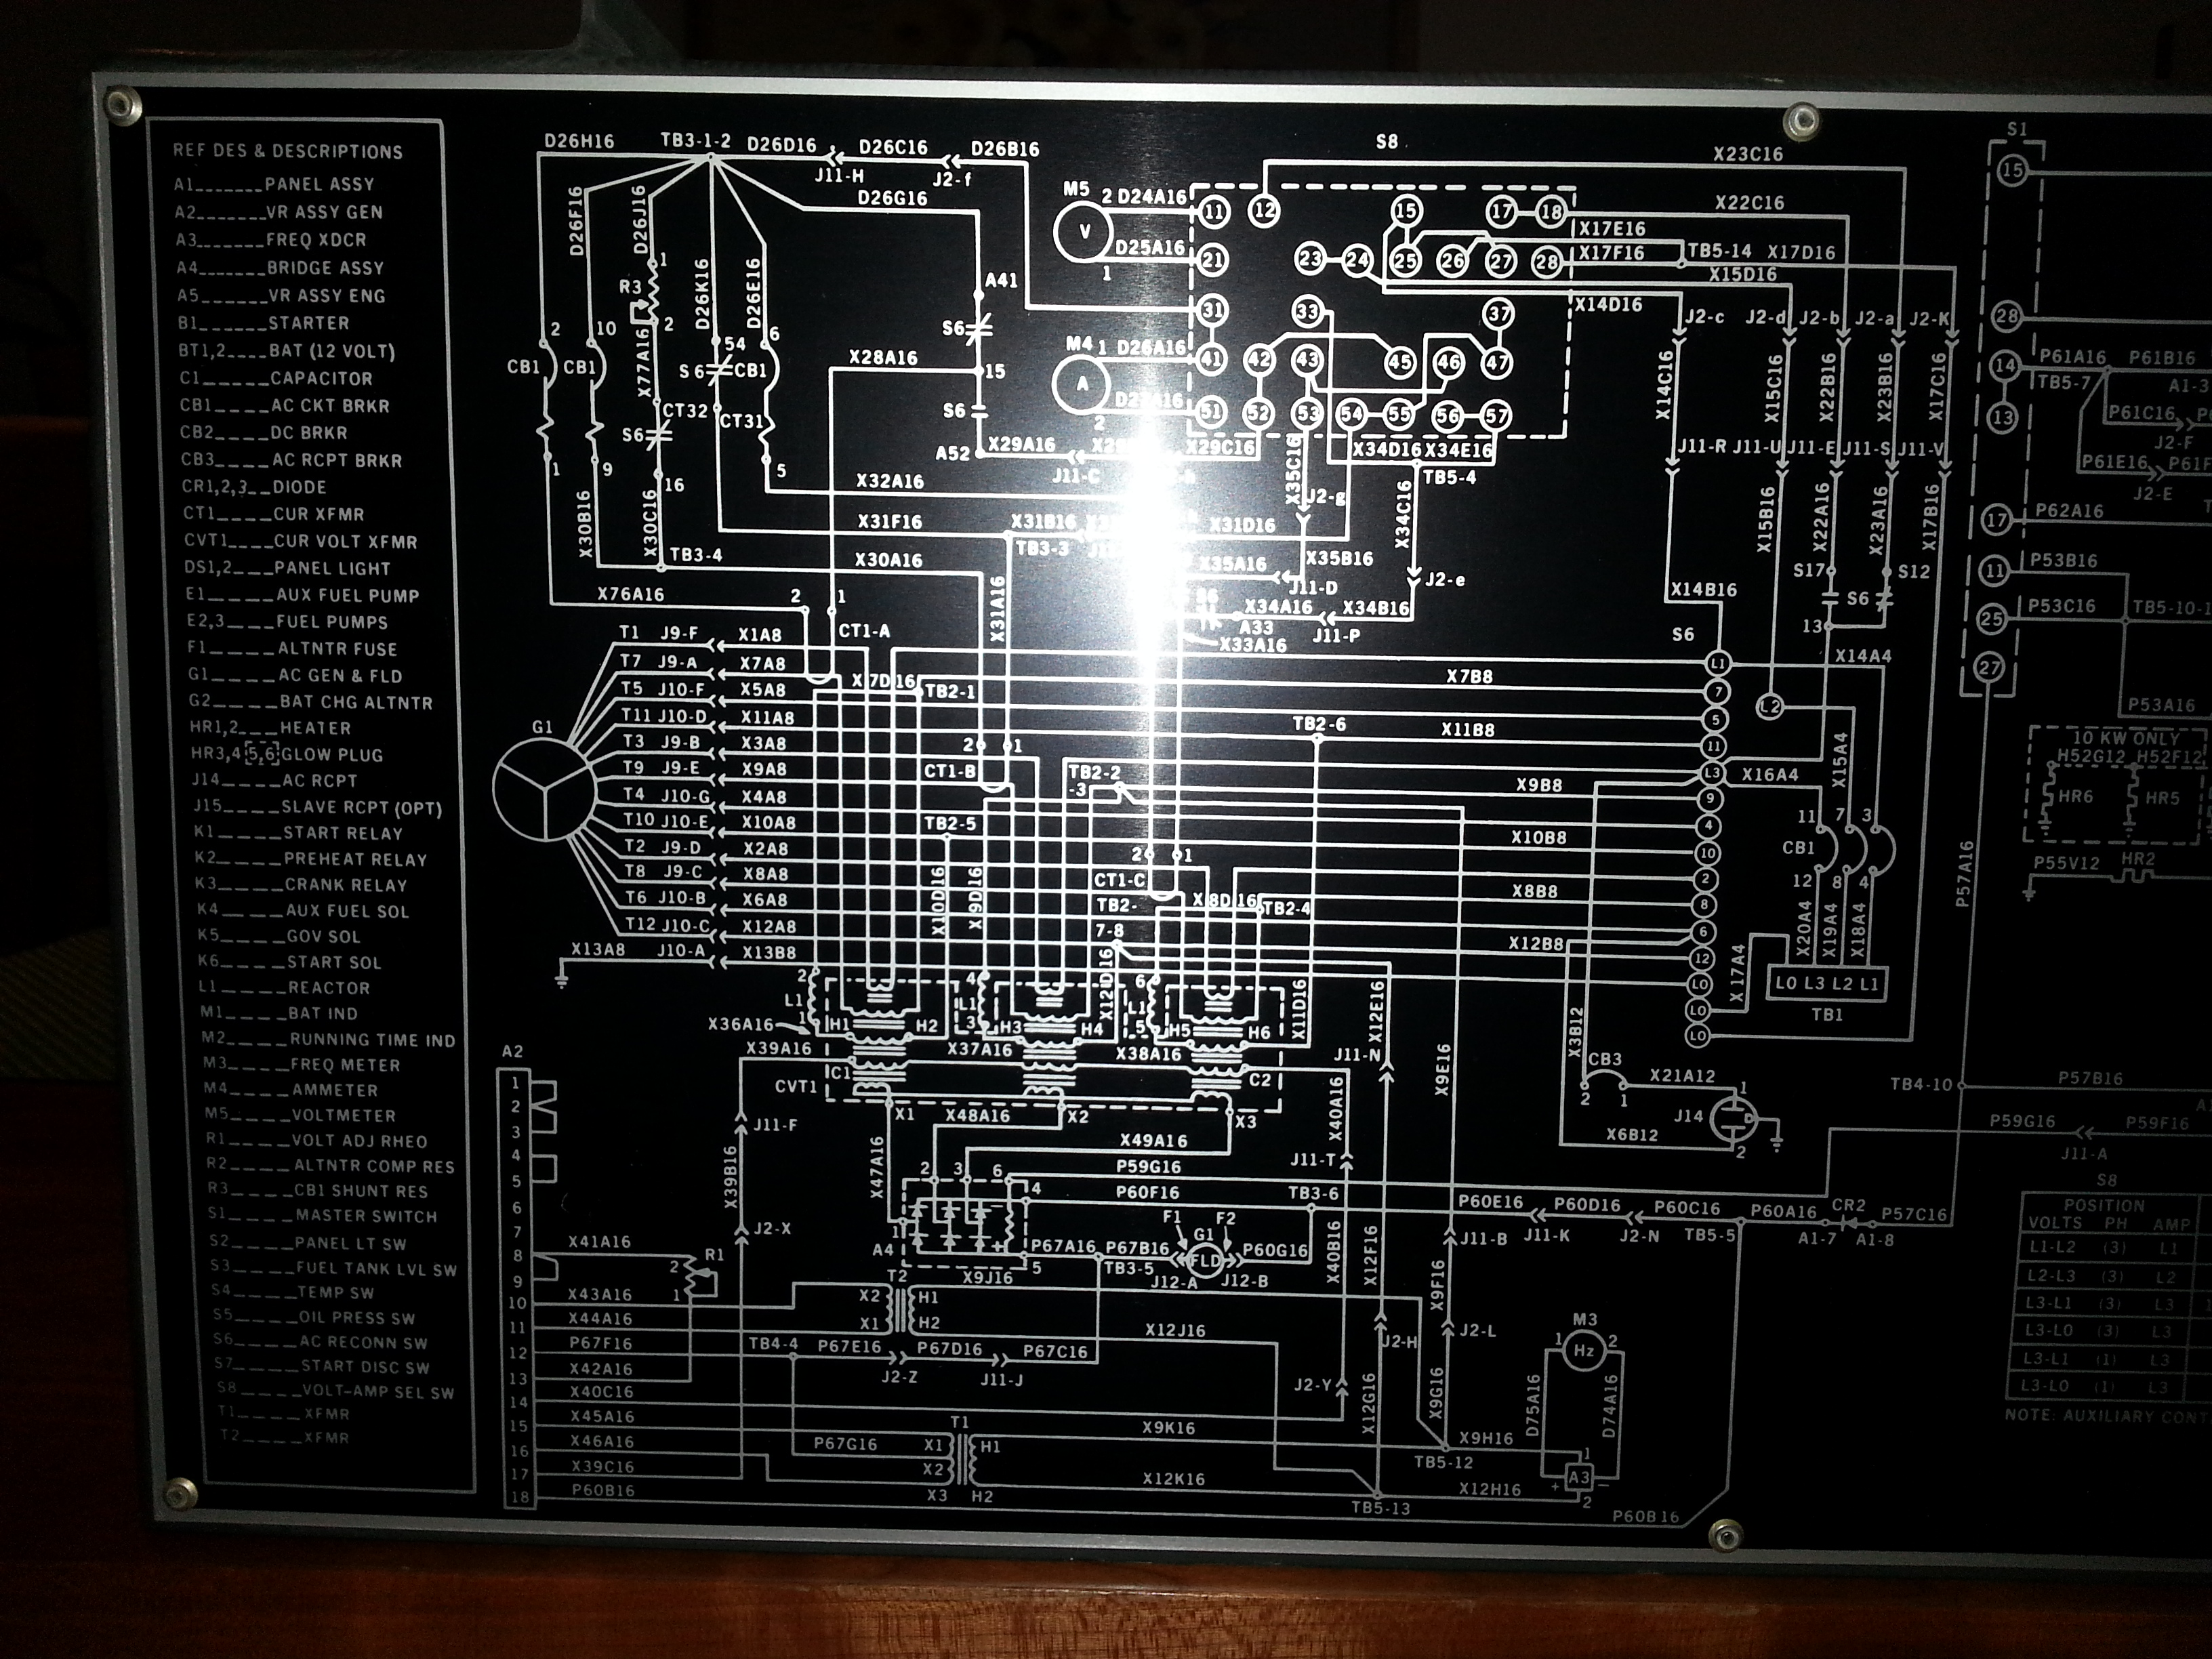 tvss wiring diagram stereo headphone jack 480 three phase service circuit